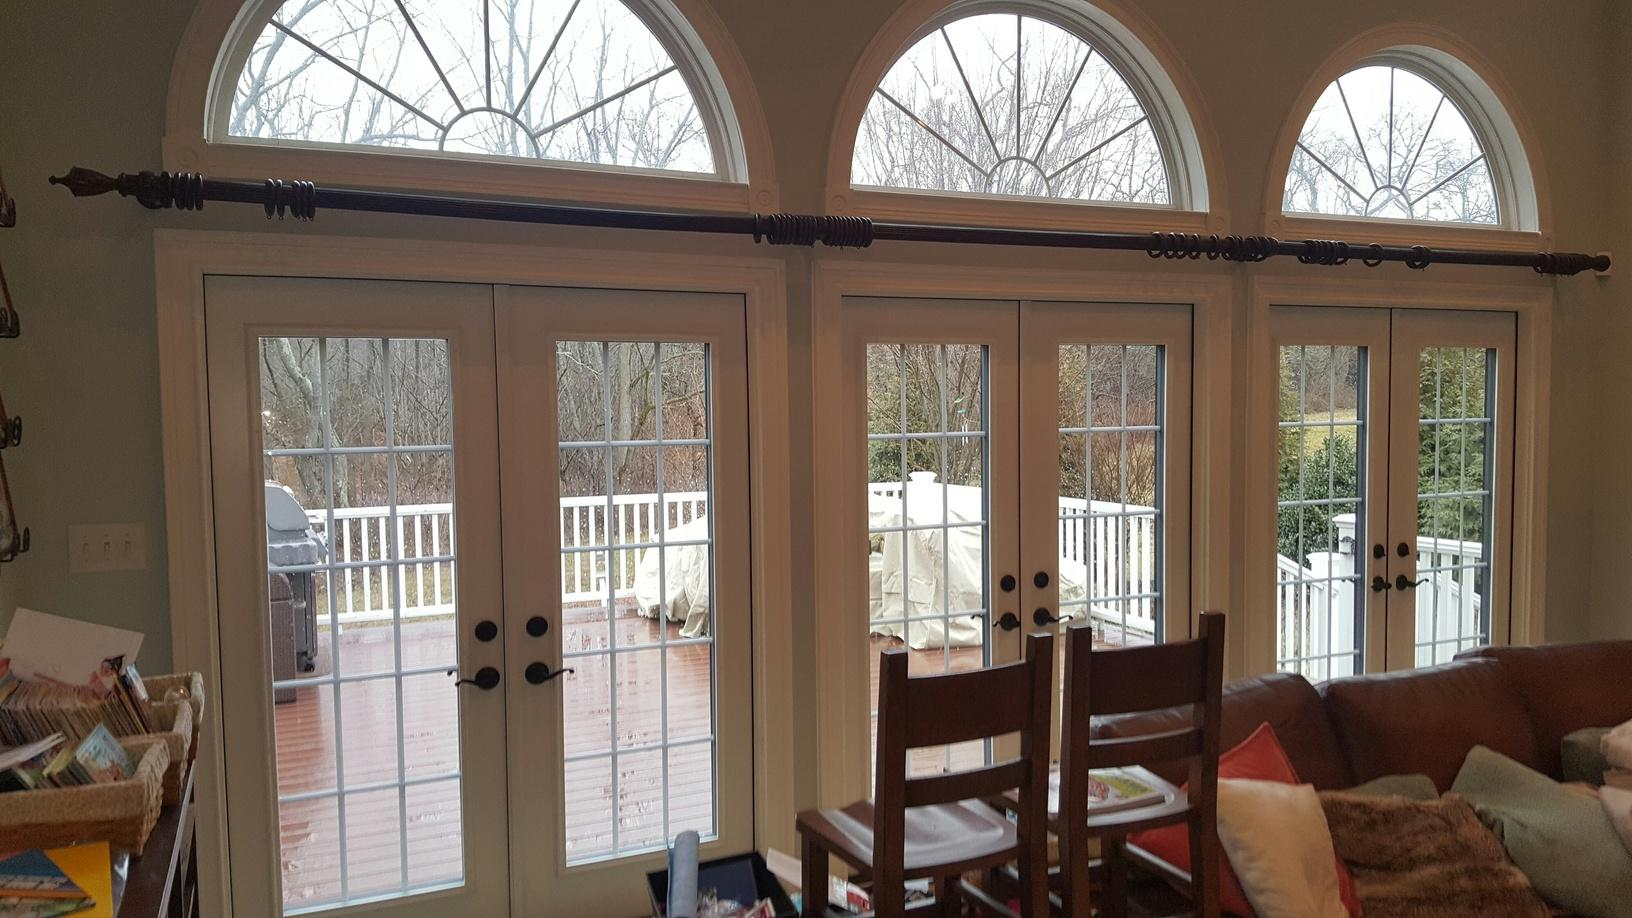 Custom French Outswing Patio Doors with Colonial Grids, Aged Bronze Hardware, Snow White Interior, Coal Black Exterior Installed in Swedesboro, NJ - After Photo